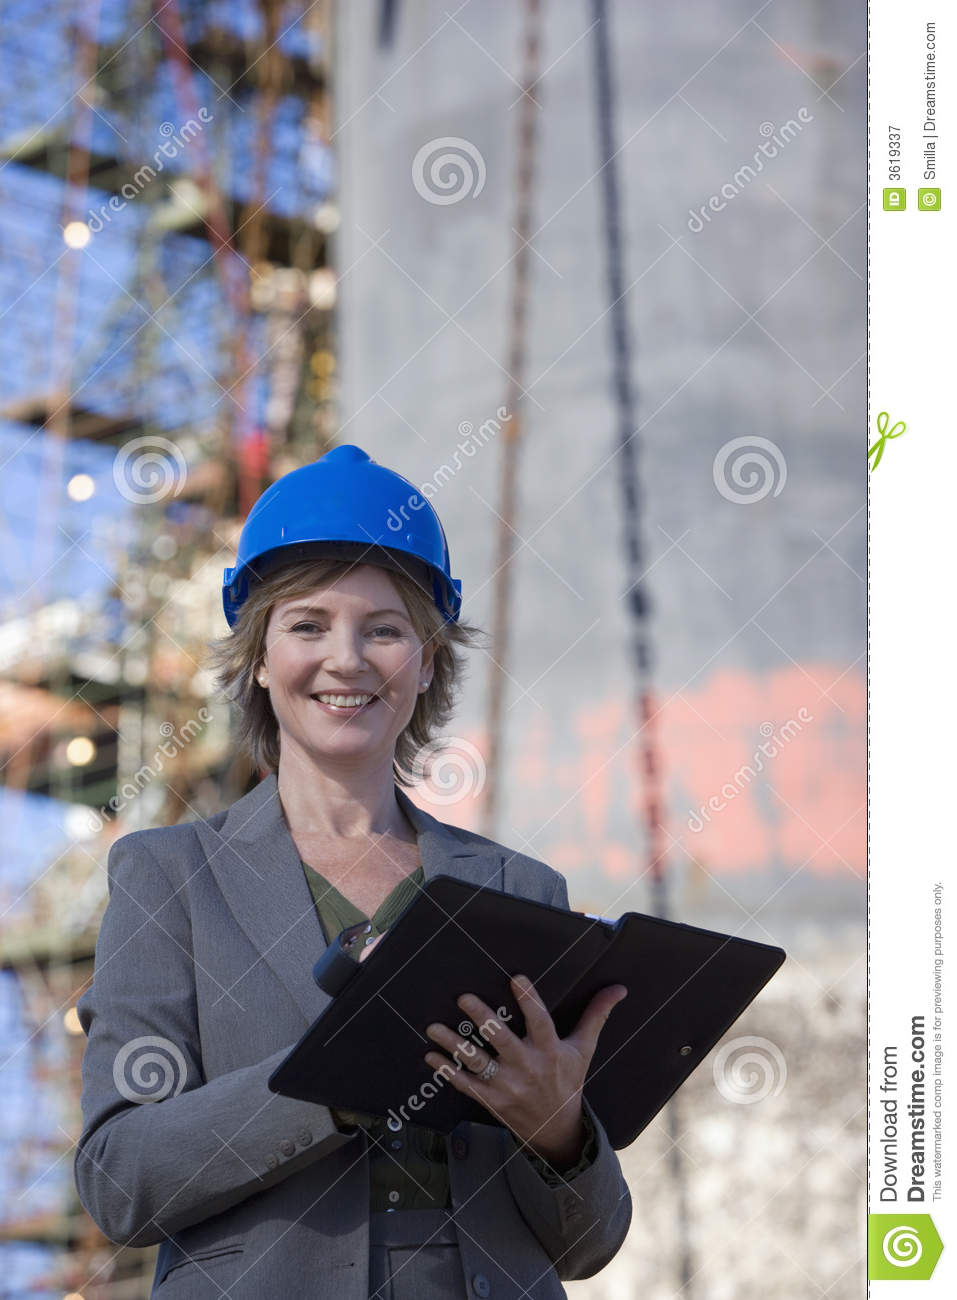 A portrait of a construction engineer